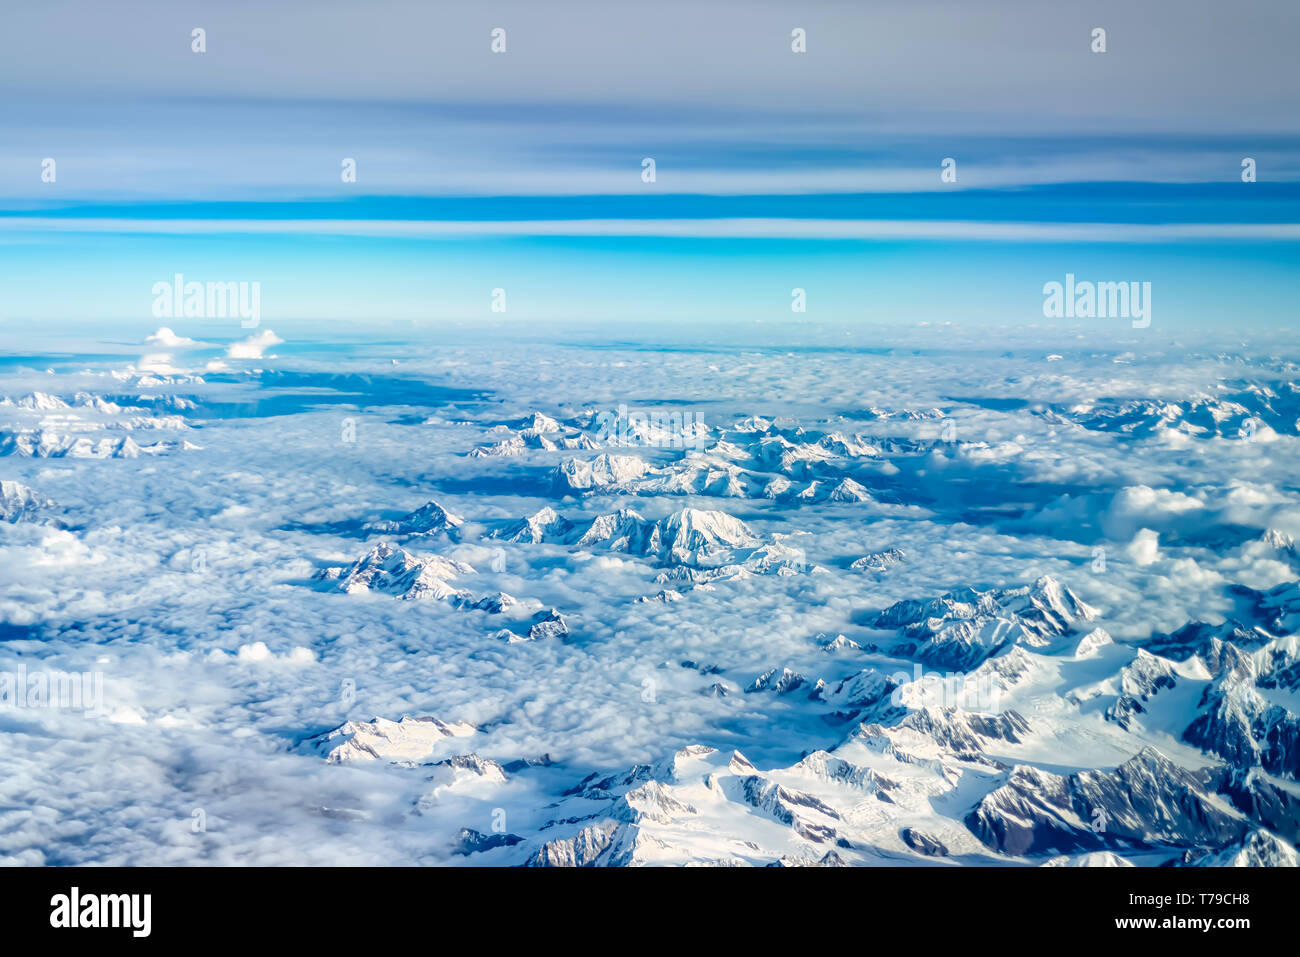 The snow covered peaks of the Dhauladhar/White range of the lesser Himalayas, India, poking out into the sky through layers of monsoon clouds. - Stock Image